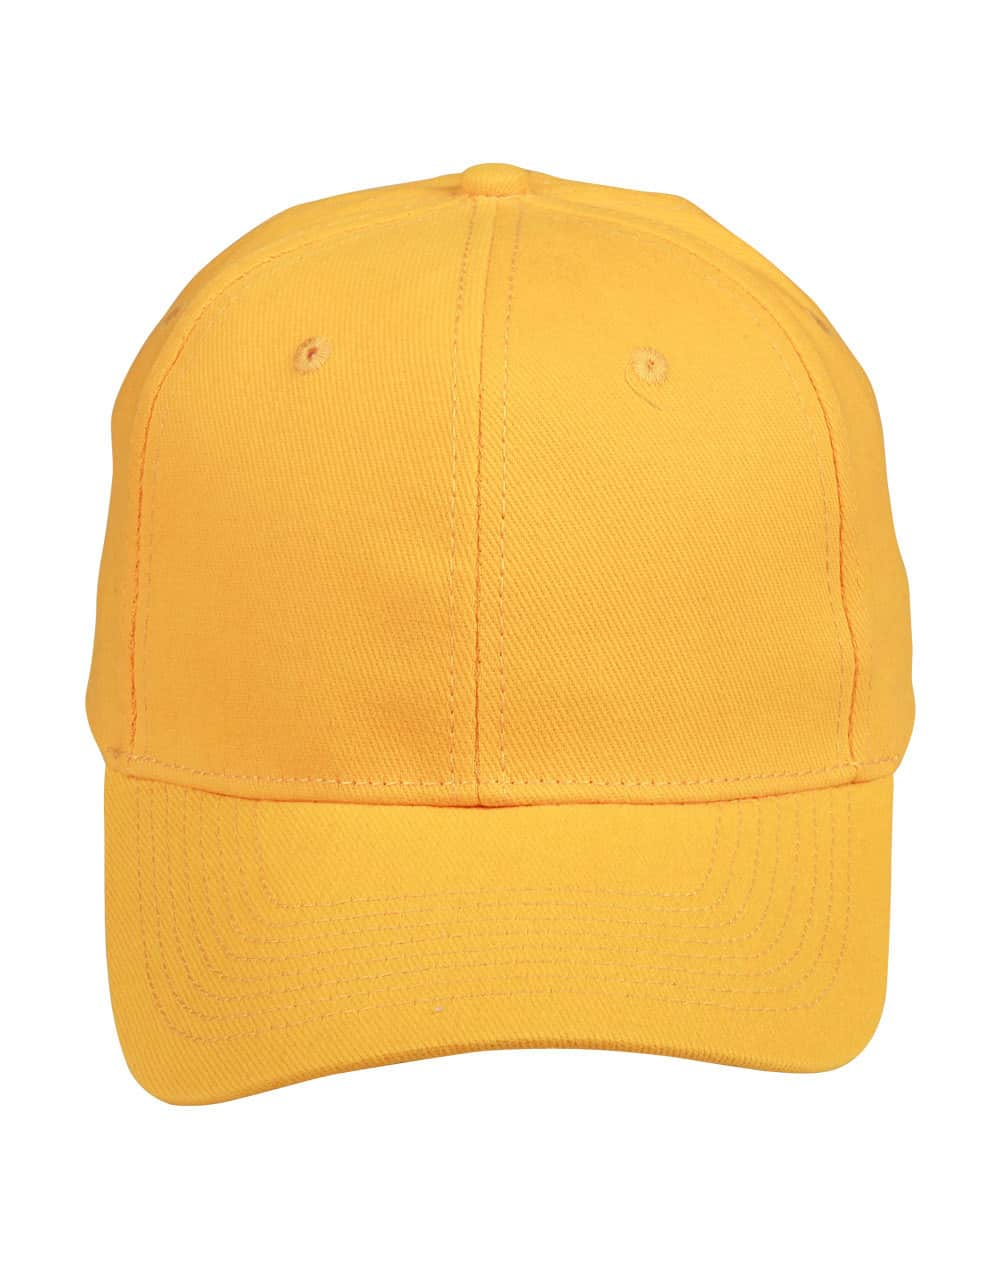 Gold Heavy Brushed Cotton Cap